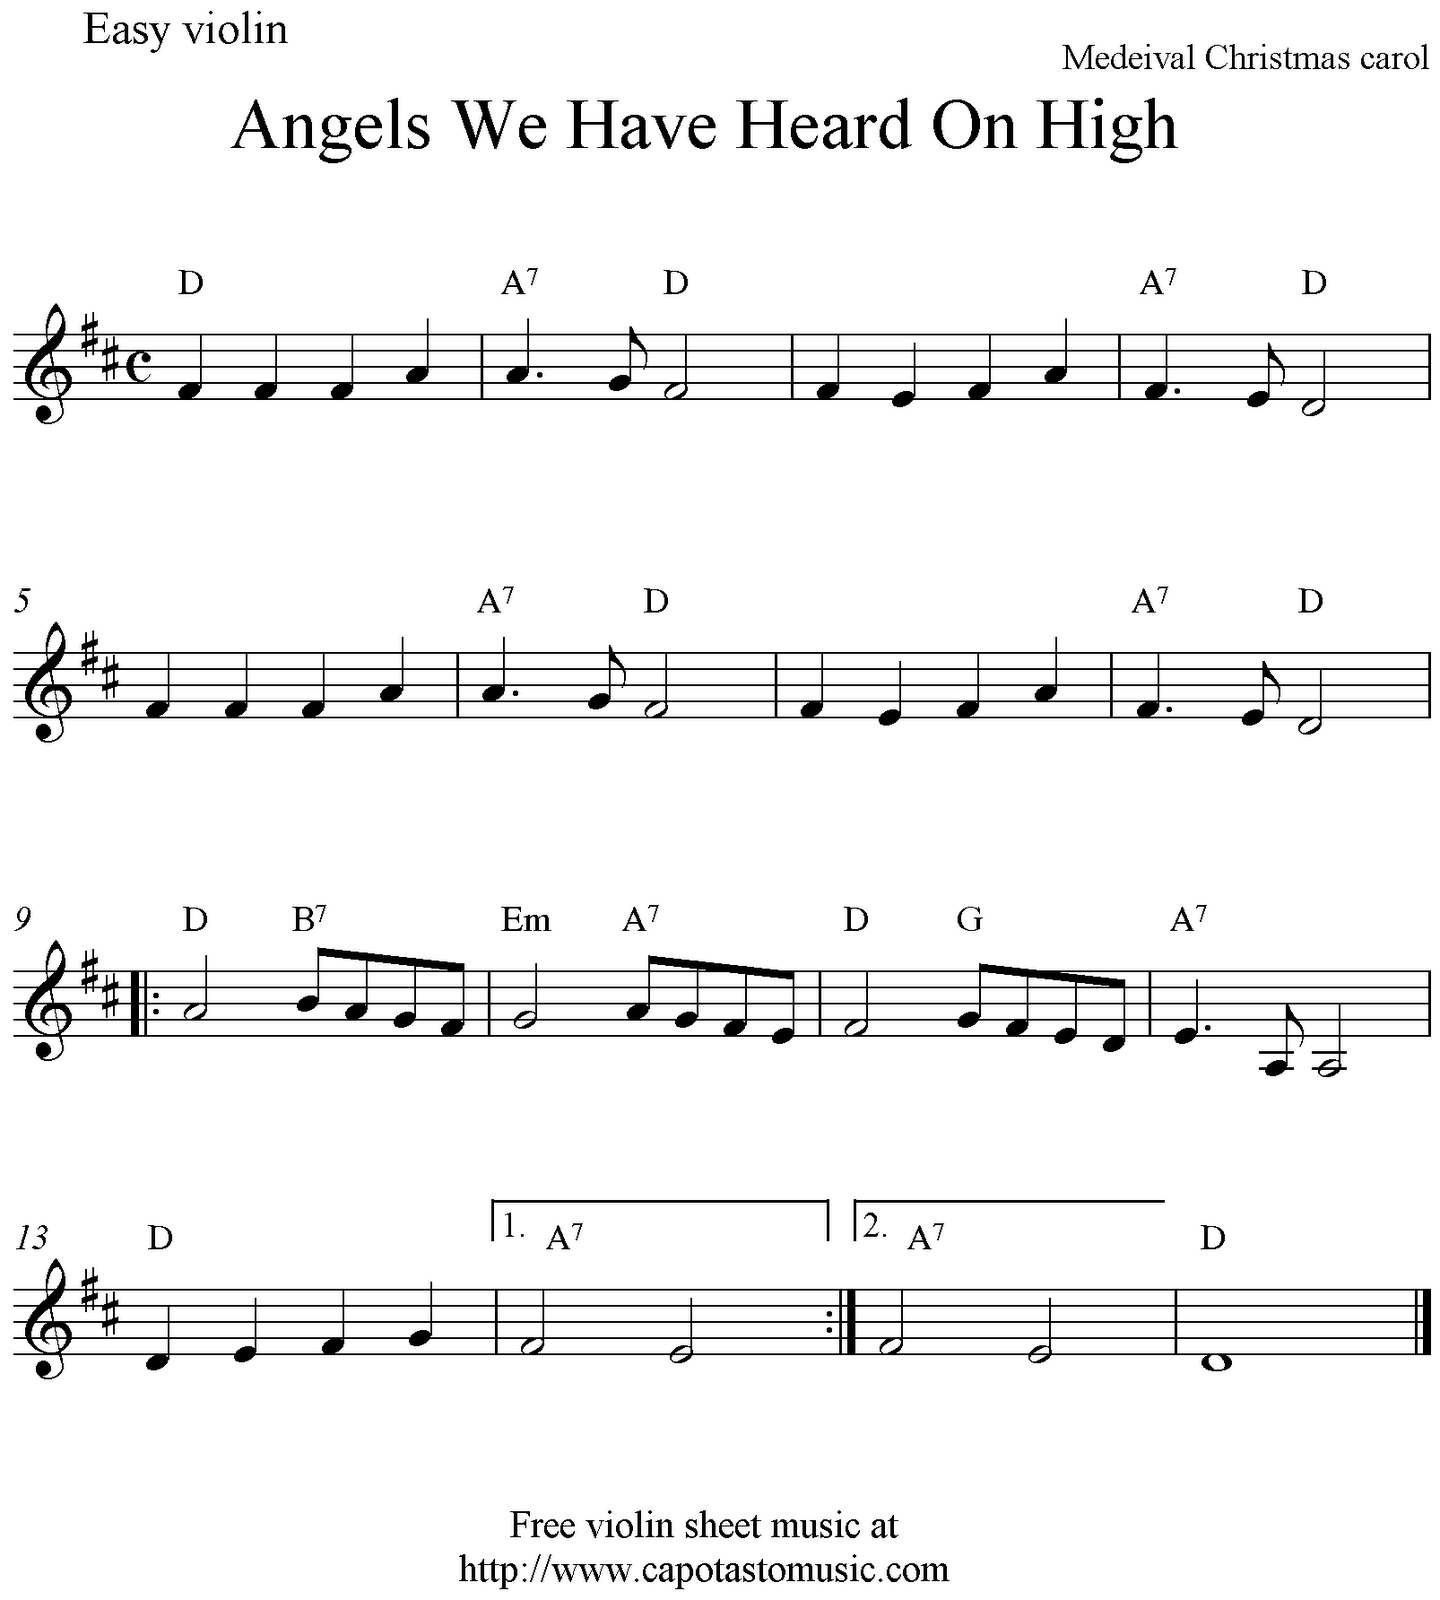 Free Sheet Music Scores: Angels We Have Heard On High